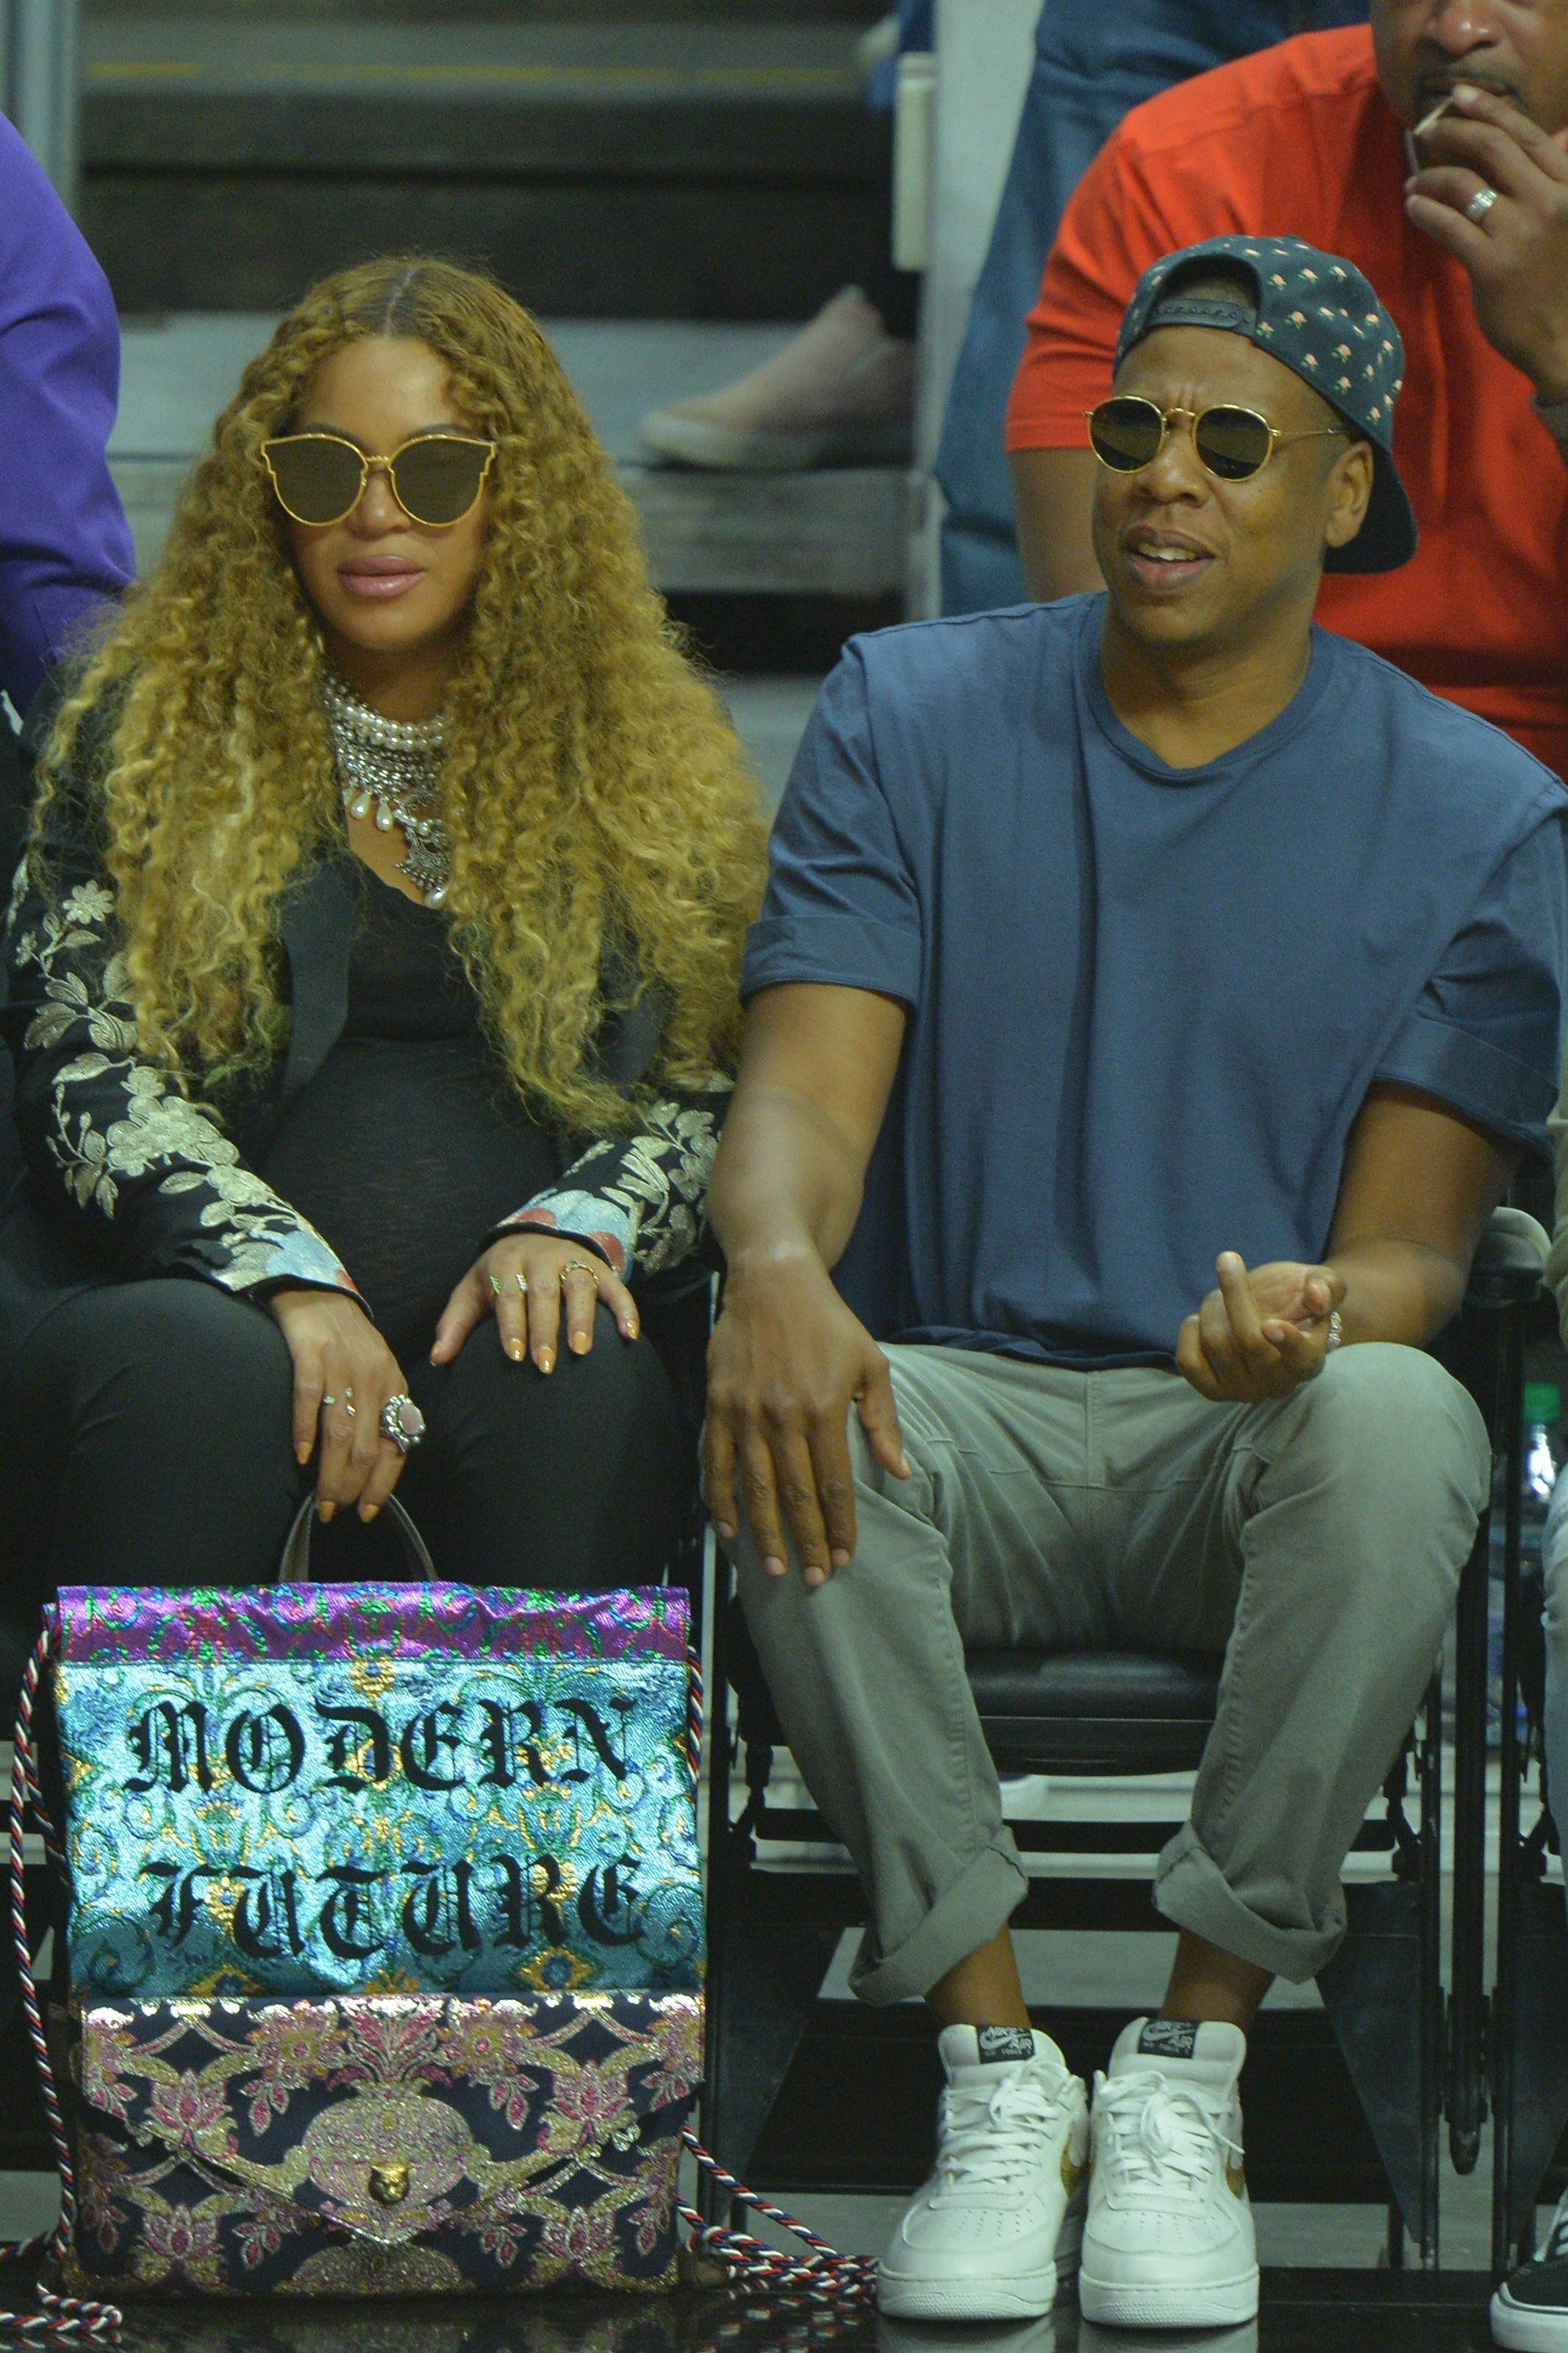 Beyonce and Jay Z attend the Utah Jazz vs Los Angles Clippers NBA Western Conference Game in Los Angeles on April 30, 2017.